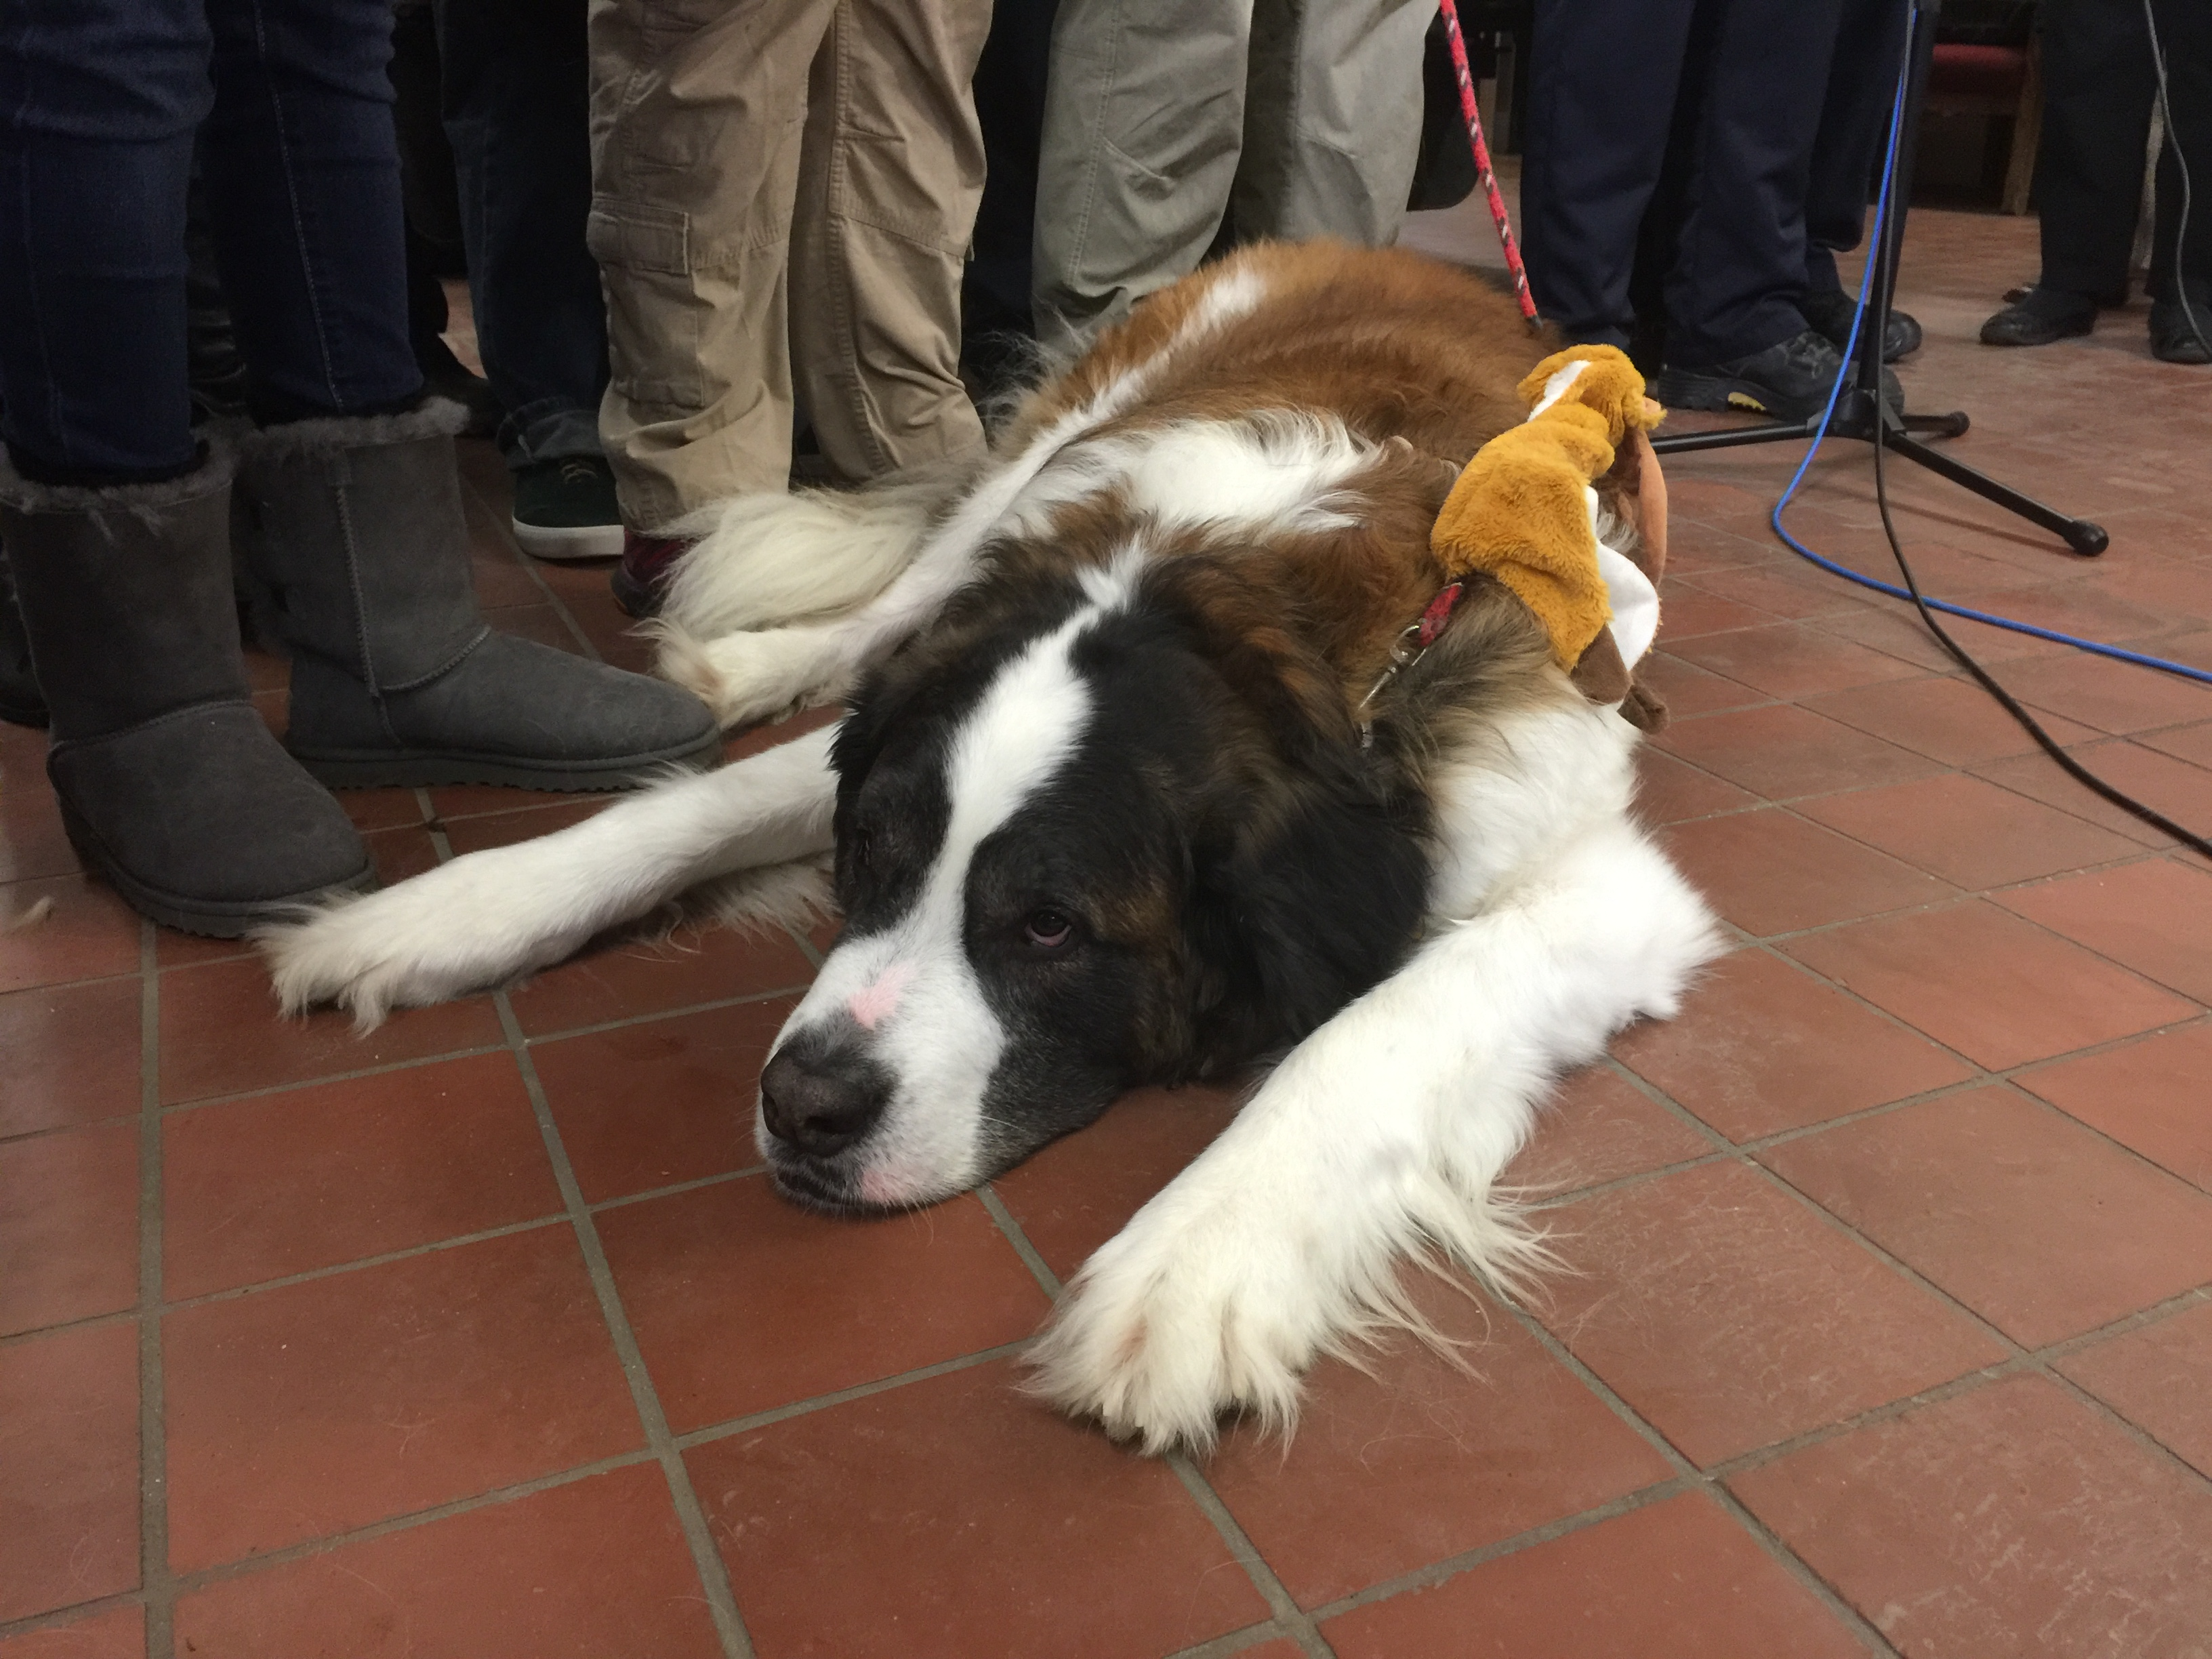 Fairfax dog rescued after falling through ice during blizzard